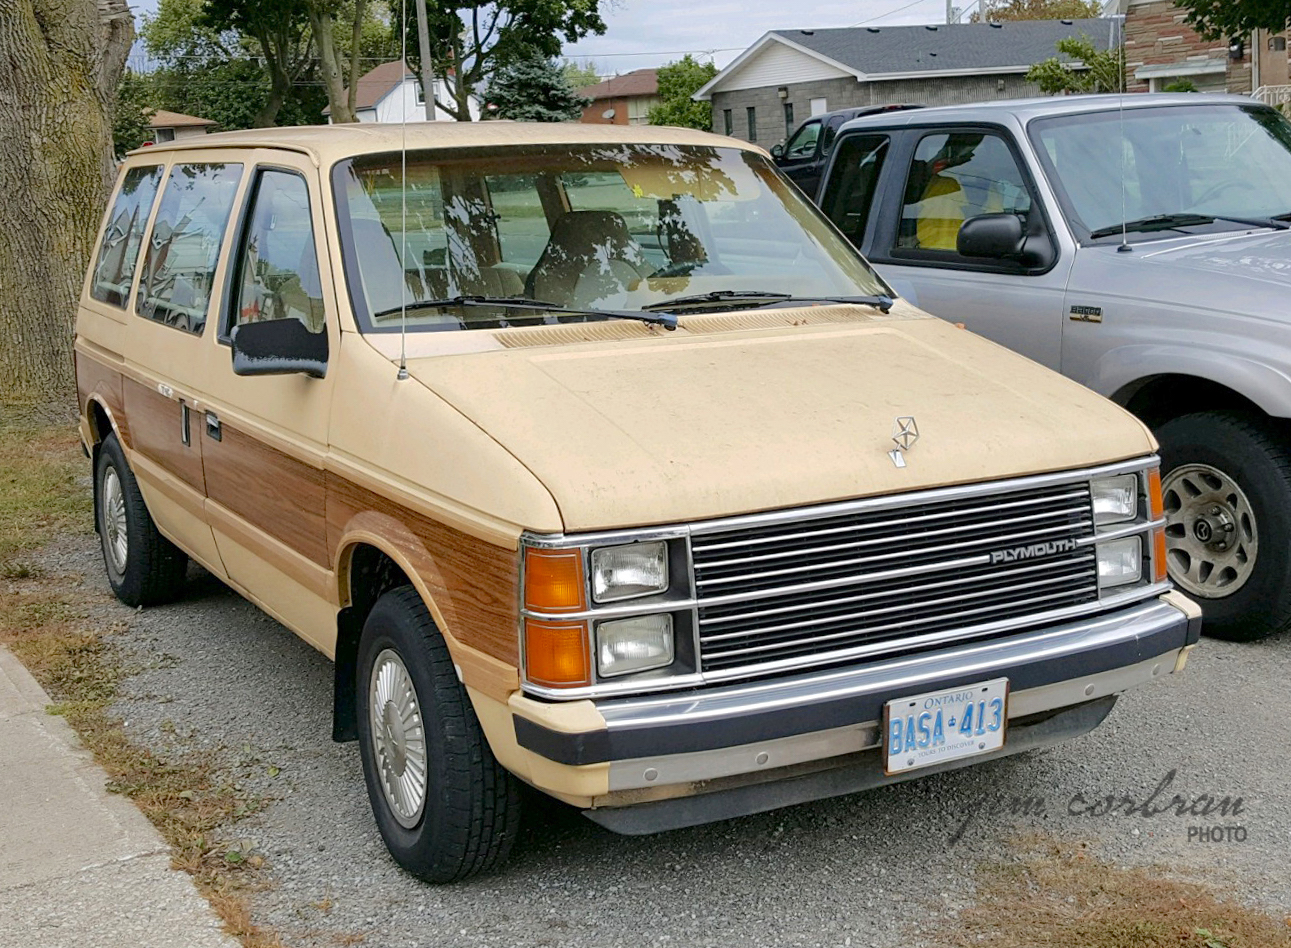 RealRides of WNY - c1984 Plymouth Voyager